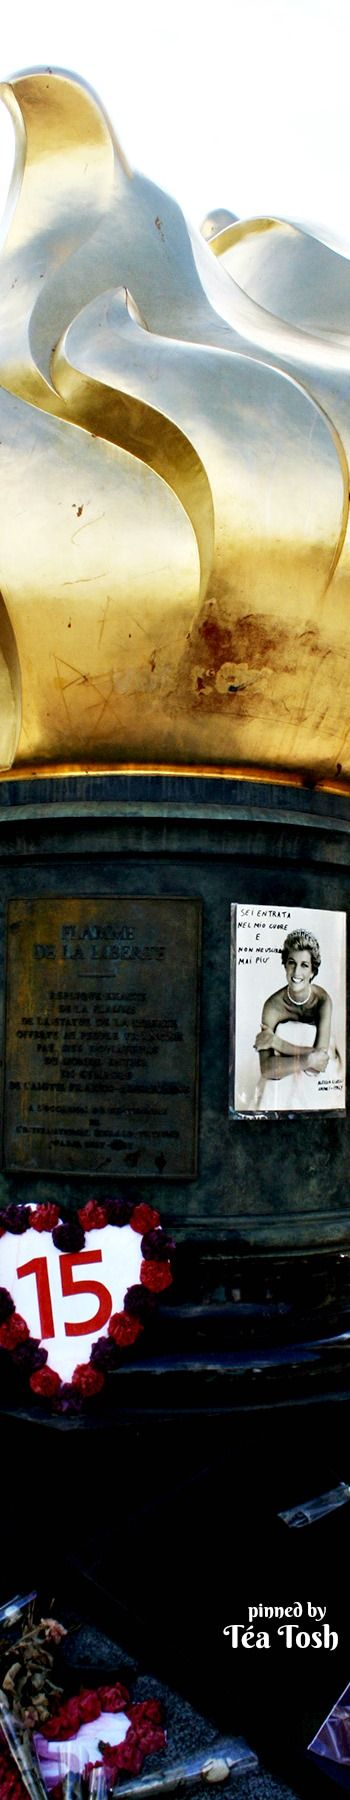 ❇Téa Tosh❇ The Flame of Liberty is always associated with the death of Diana, but it was really a gift to Paris from the U.S.A. in gratitude for the restoration hard work done on the Statue of Liberty. However, most tourist visit this spot because it's placed underneath the tunnel where Princess Diana was killed in a tragic car accident. So now it has become, unofficially known as Princess Diana Memorial.